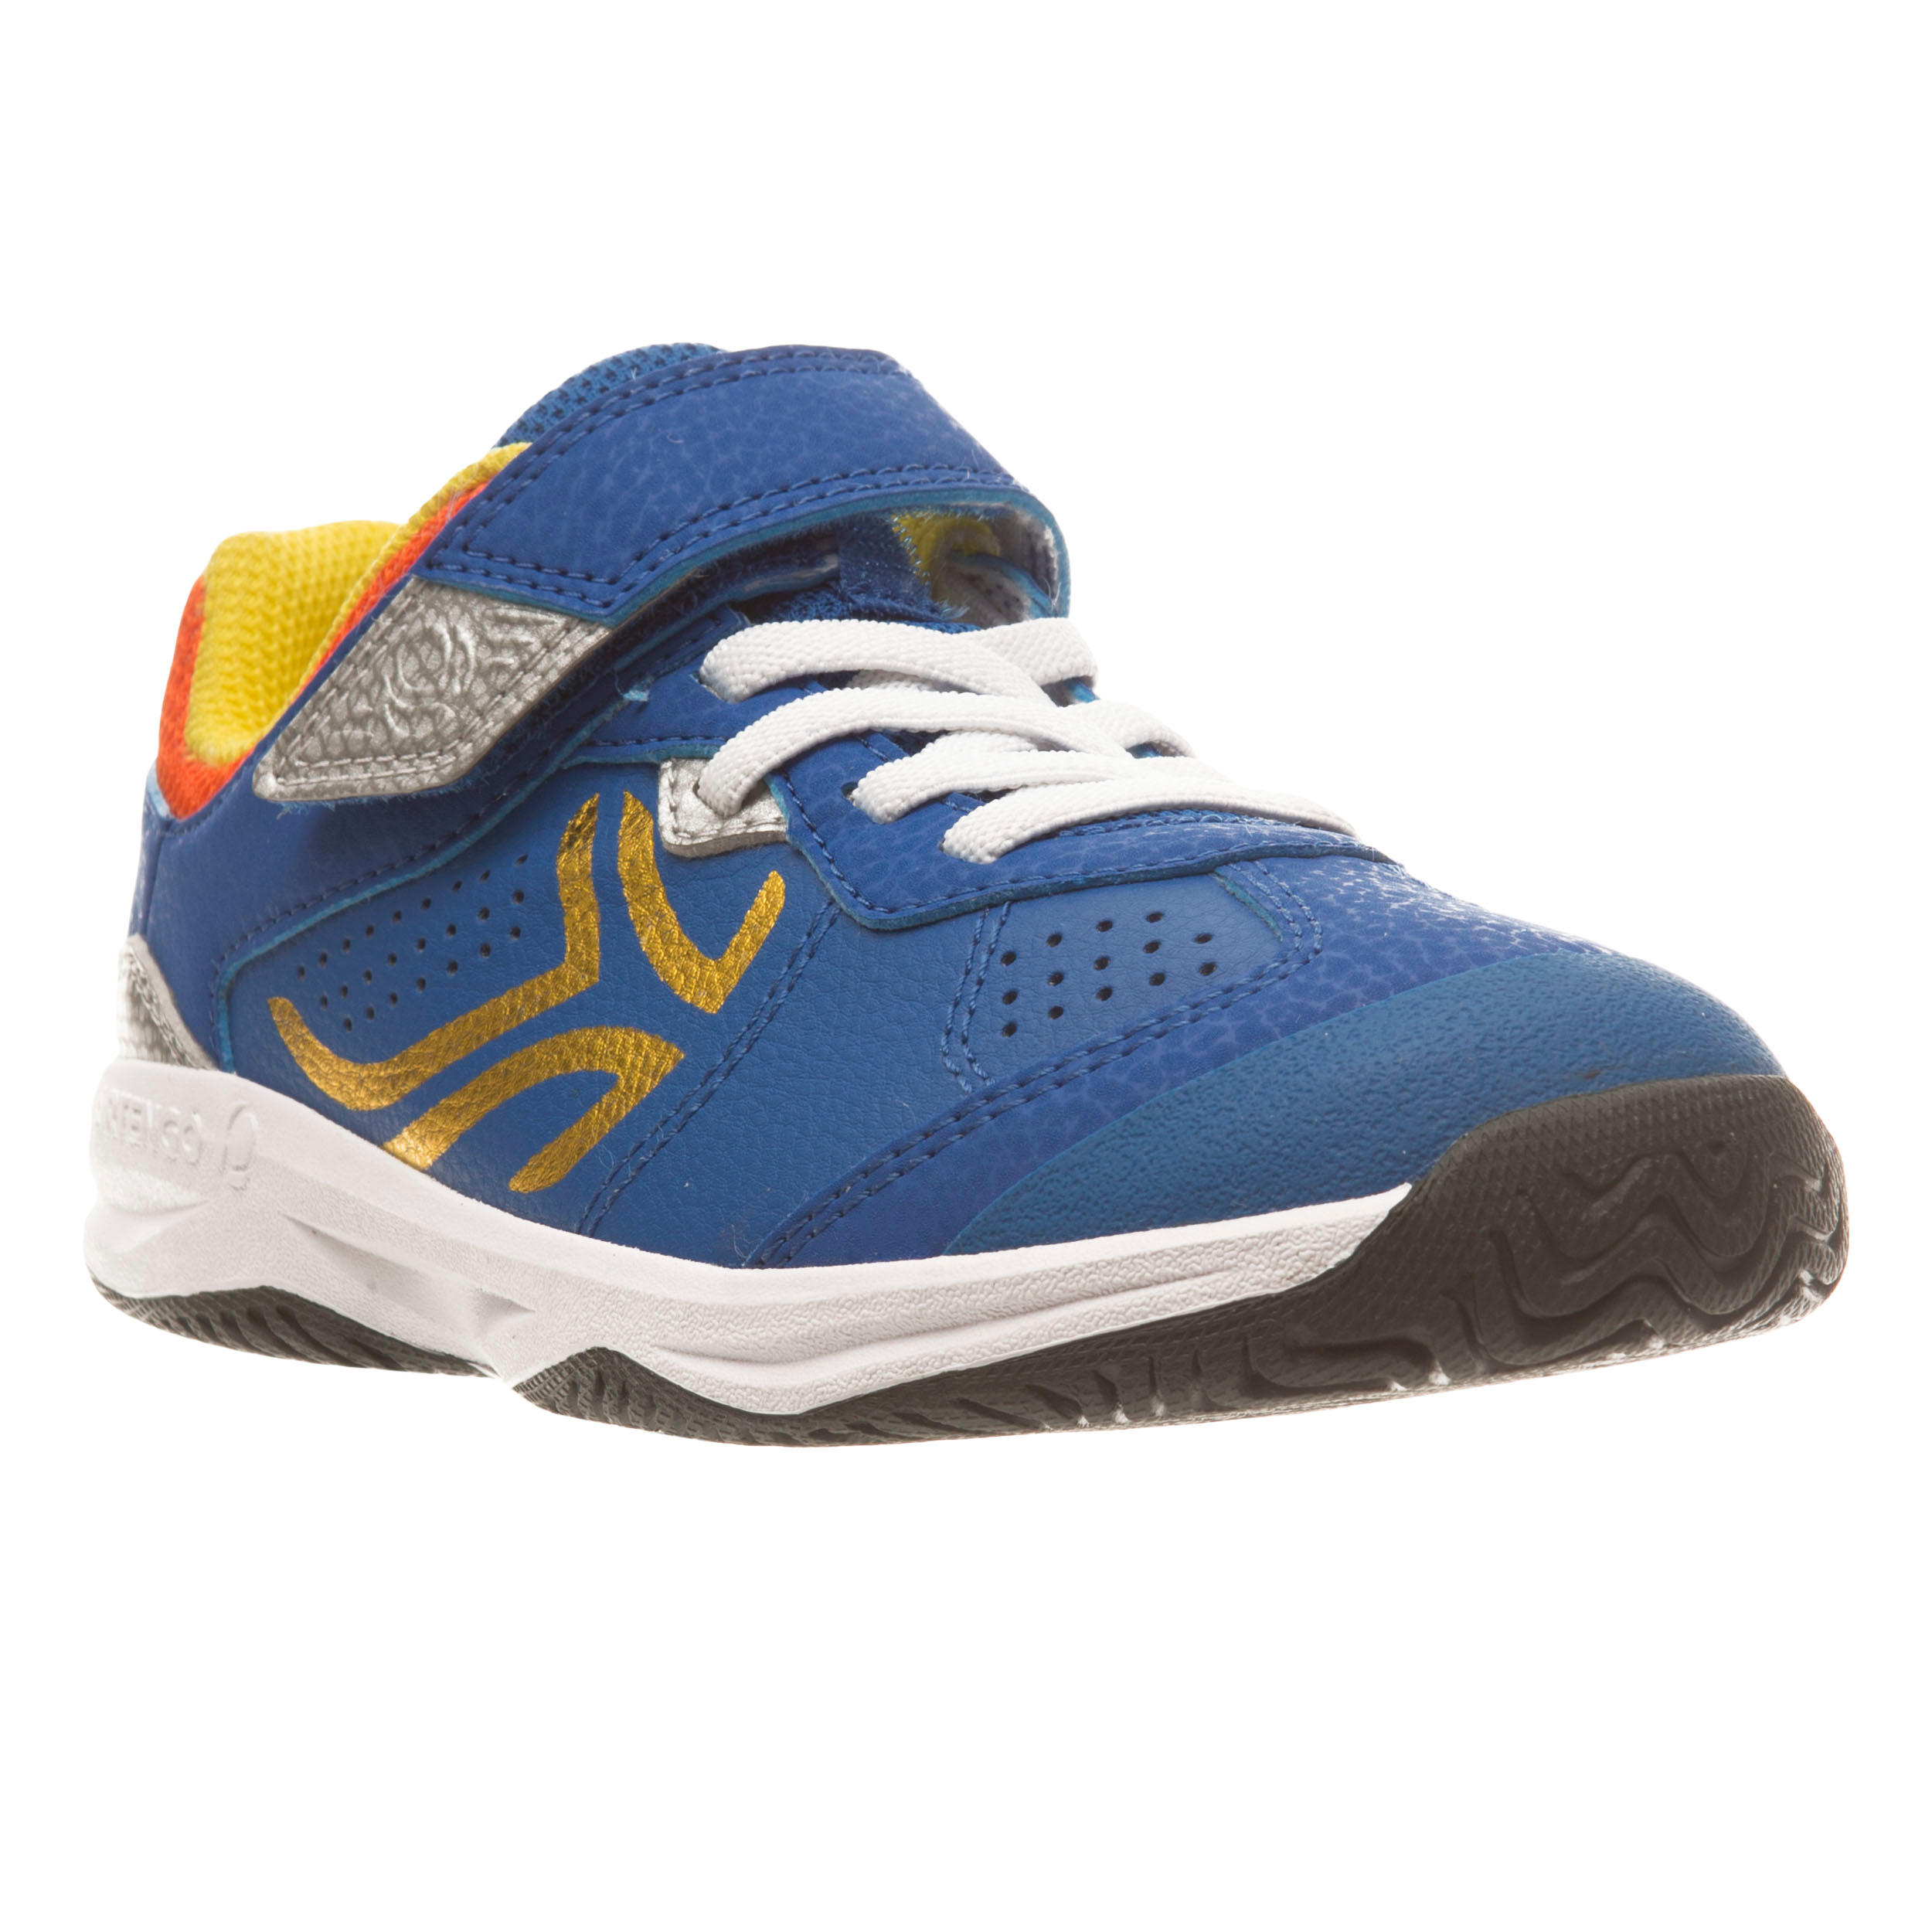 TS160 Kids Tennis Shoes - Rainbow Blue